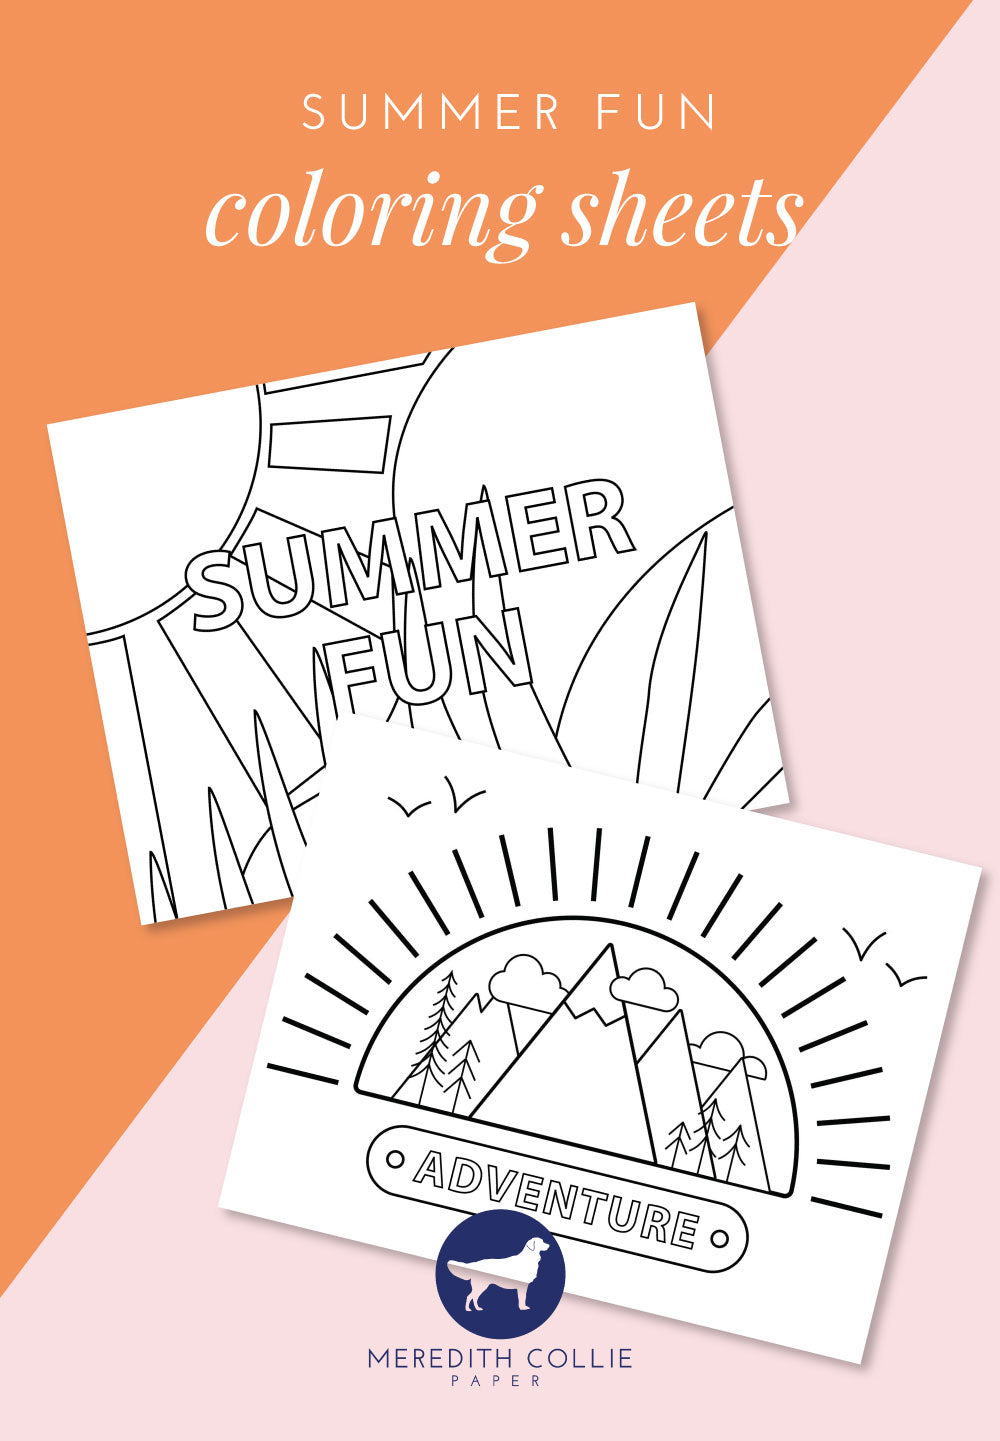 Summer Themed Coloring Pages, Free Download, Summer Fun, Meredith Collie Paper